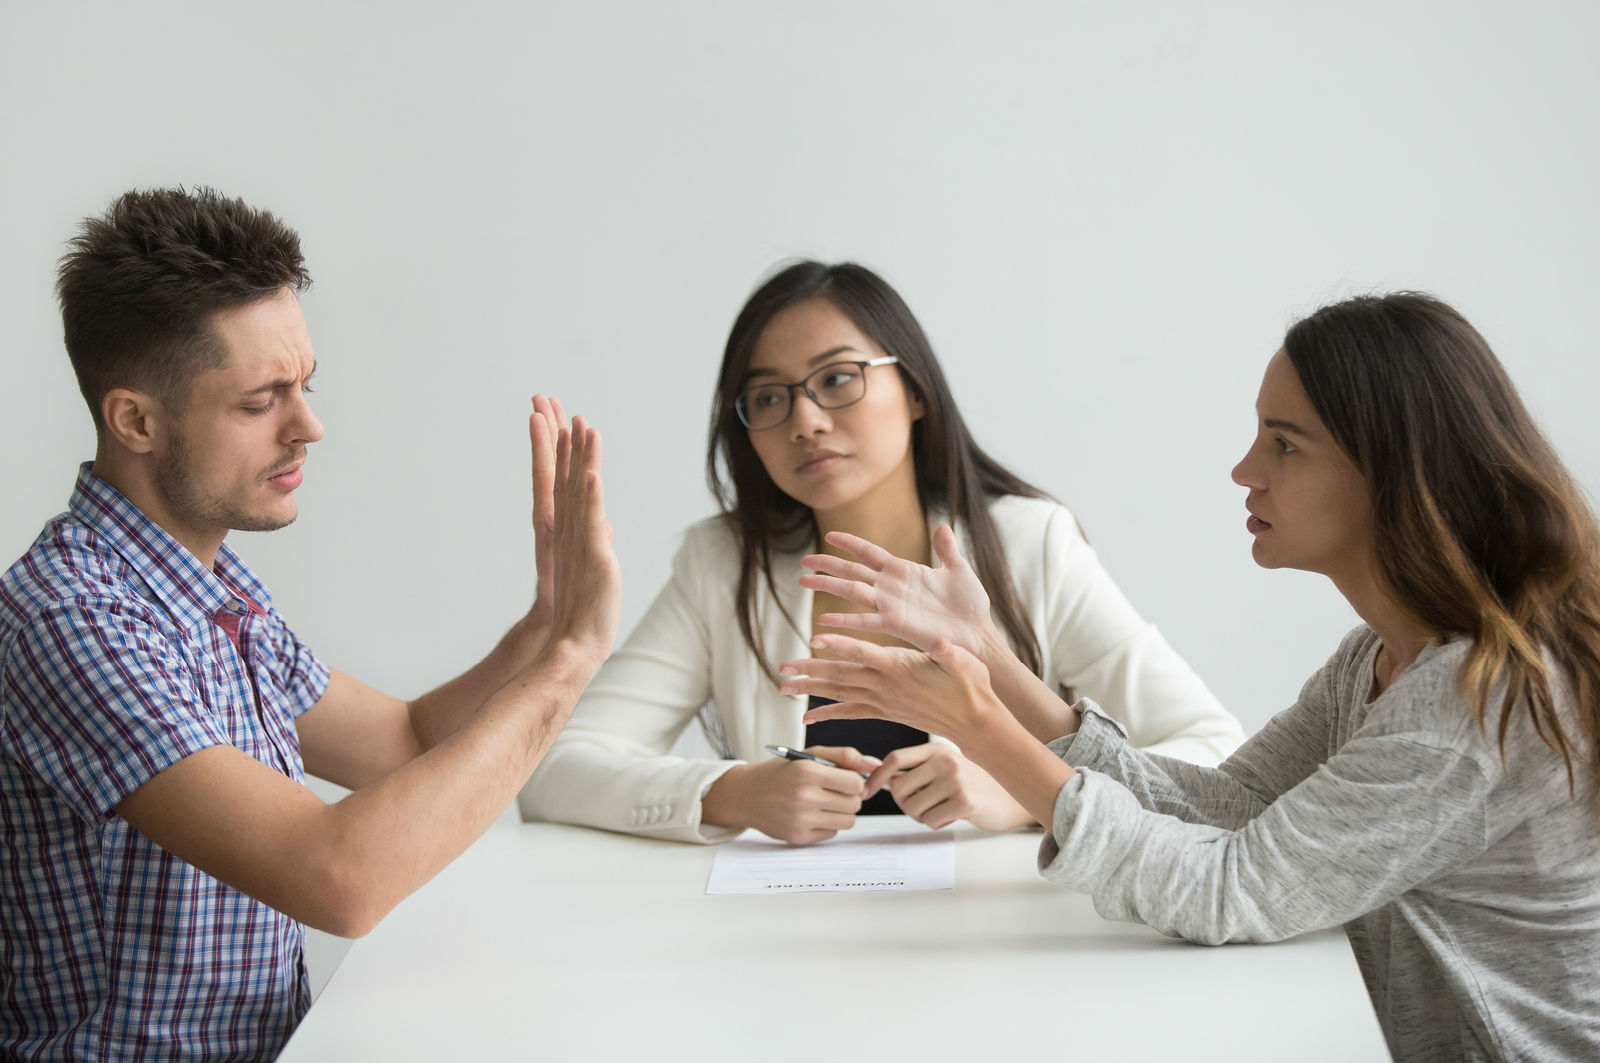 How To Use Conflicts To Strengthen Relationships